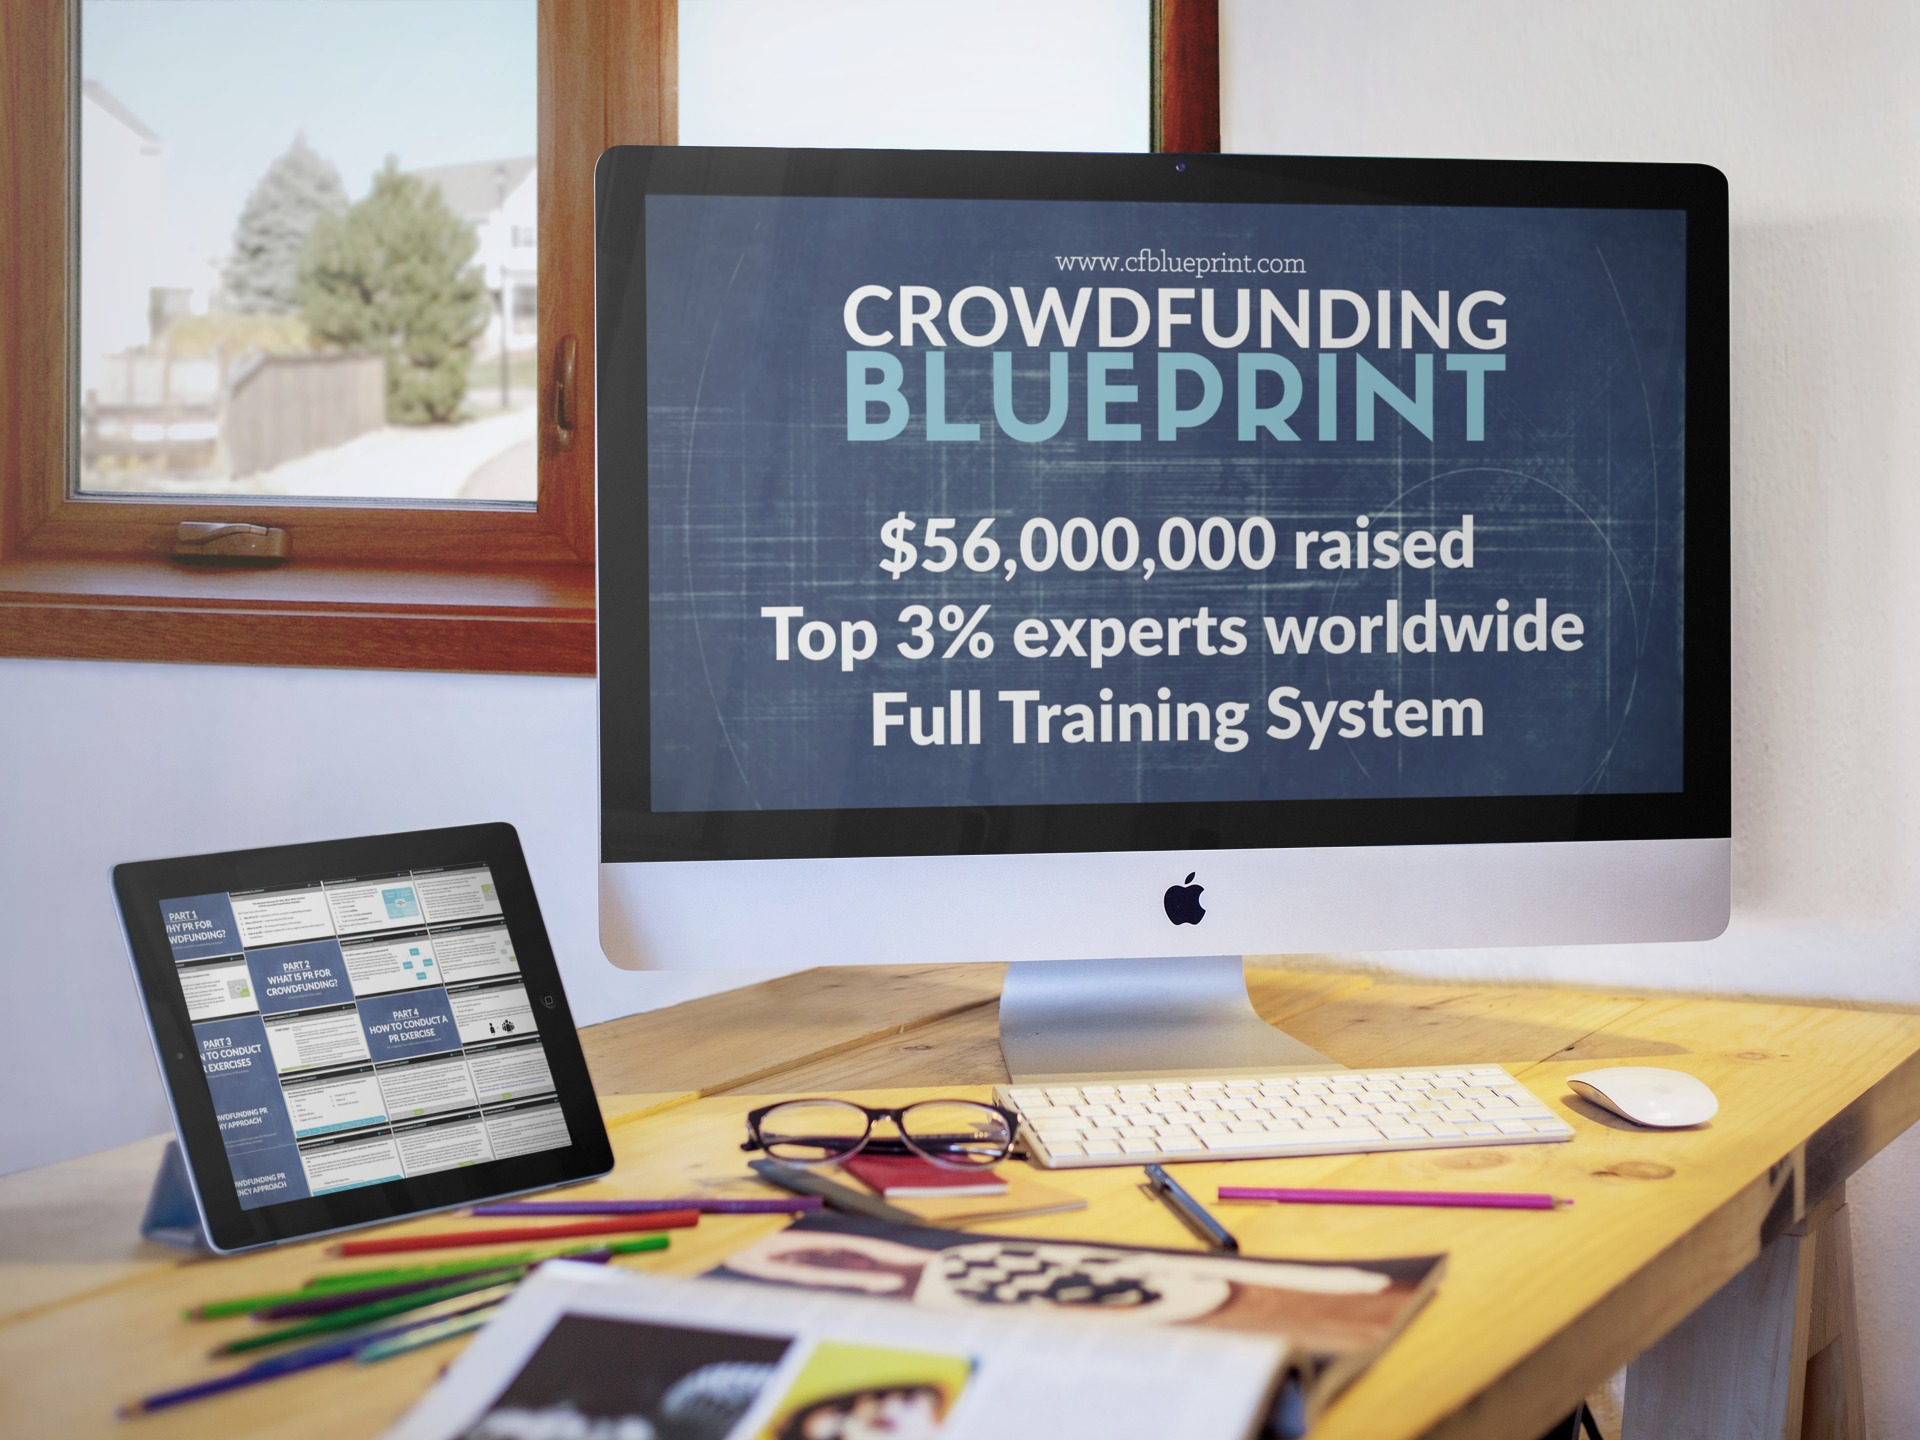 Crowdfunding blueprint launch your campaign with confidence the crowdfunding blueprint launch your campaign with confidence the worlds most comprehensive crowdfunding training resource with lessons from experts malvernweather Images